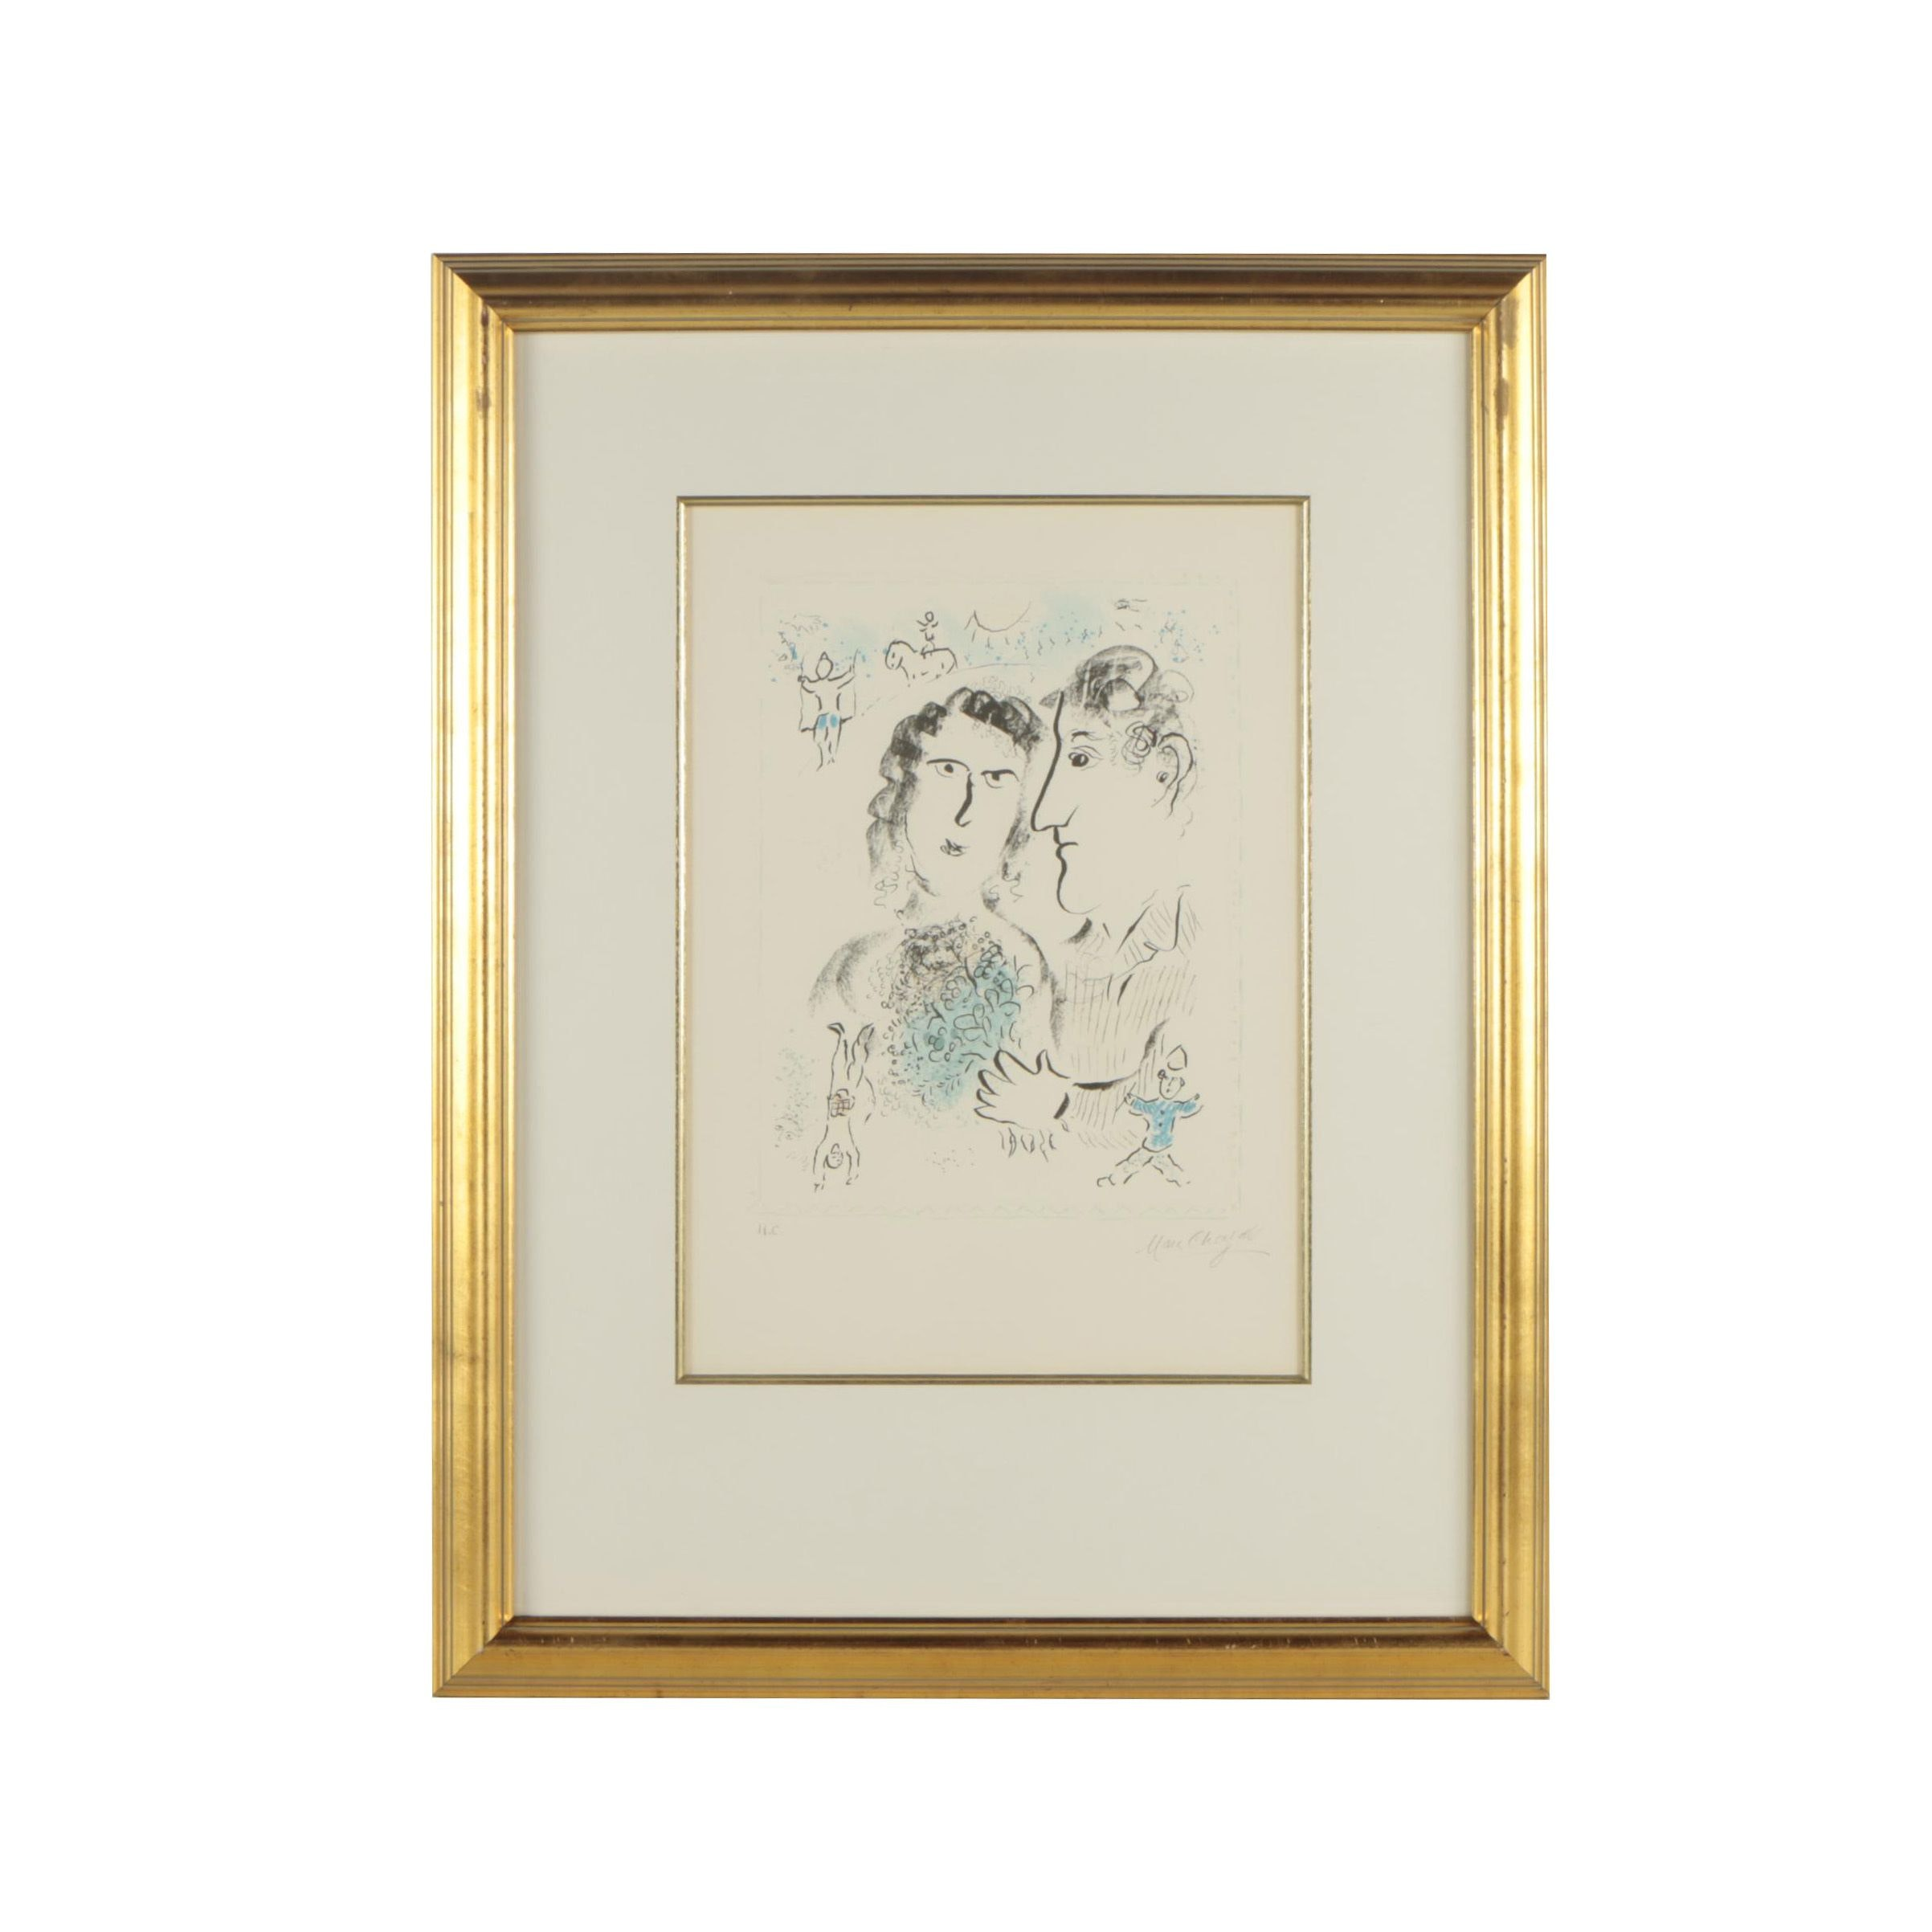 Lithographic Reproduction after Marc Chagall